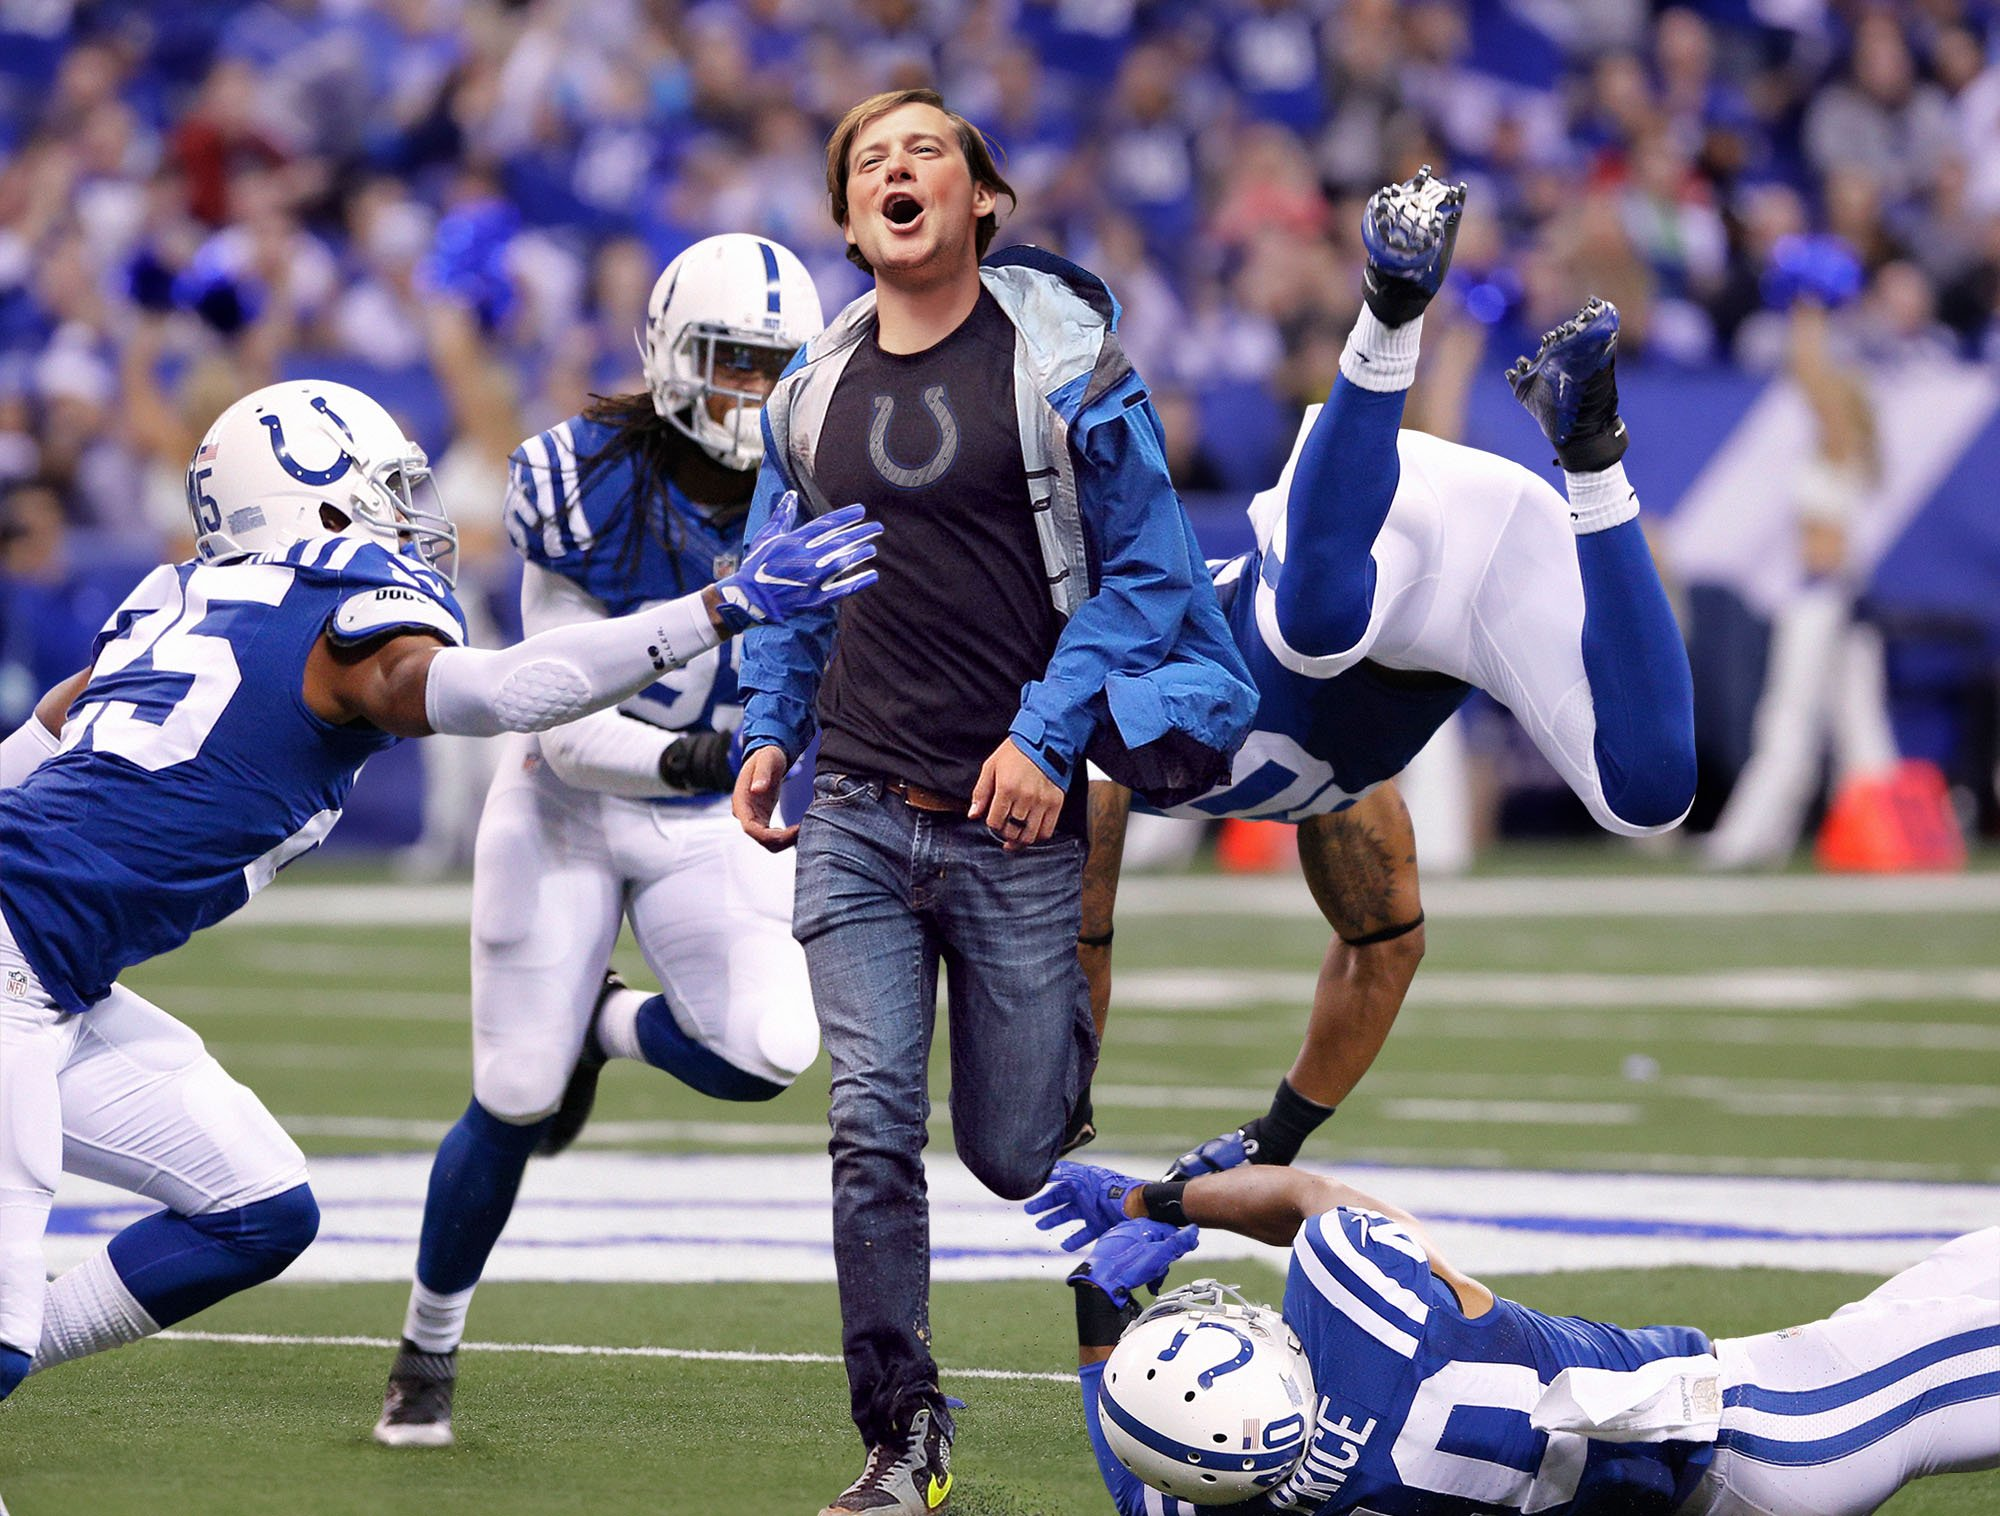 Colts Miss 8 Tackles On Drunken Fan Running Across Field https://t.co/kEV66wEdjX https://t.co/qYeqzEk04a